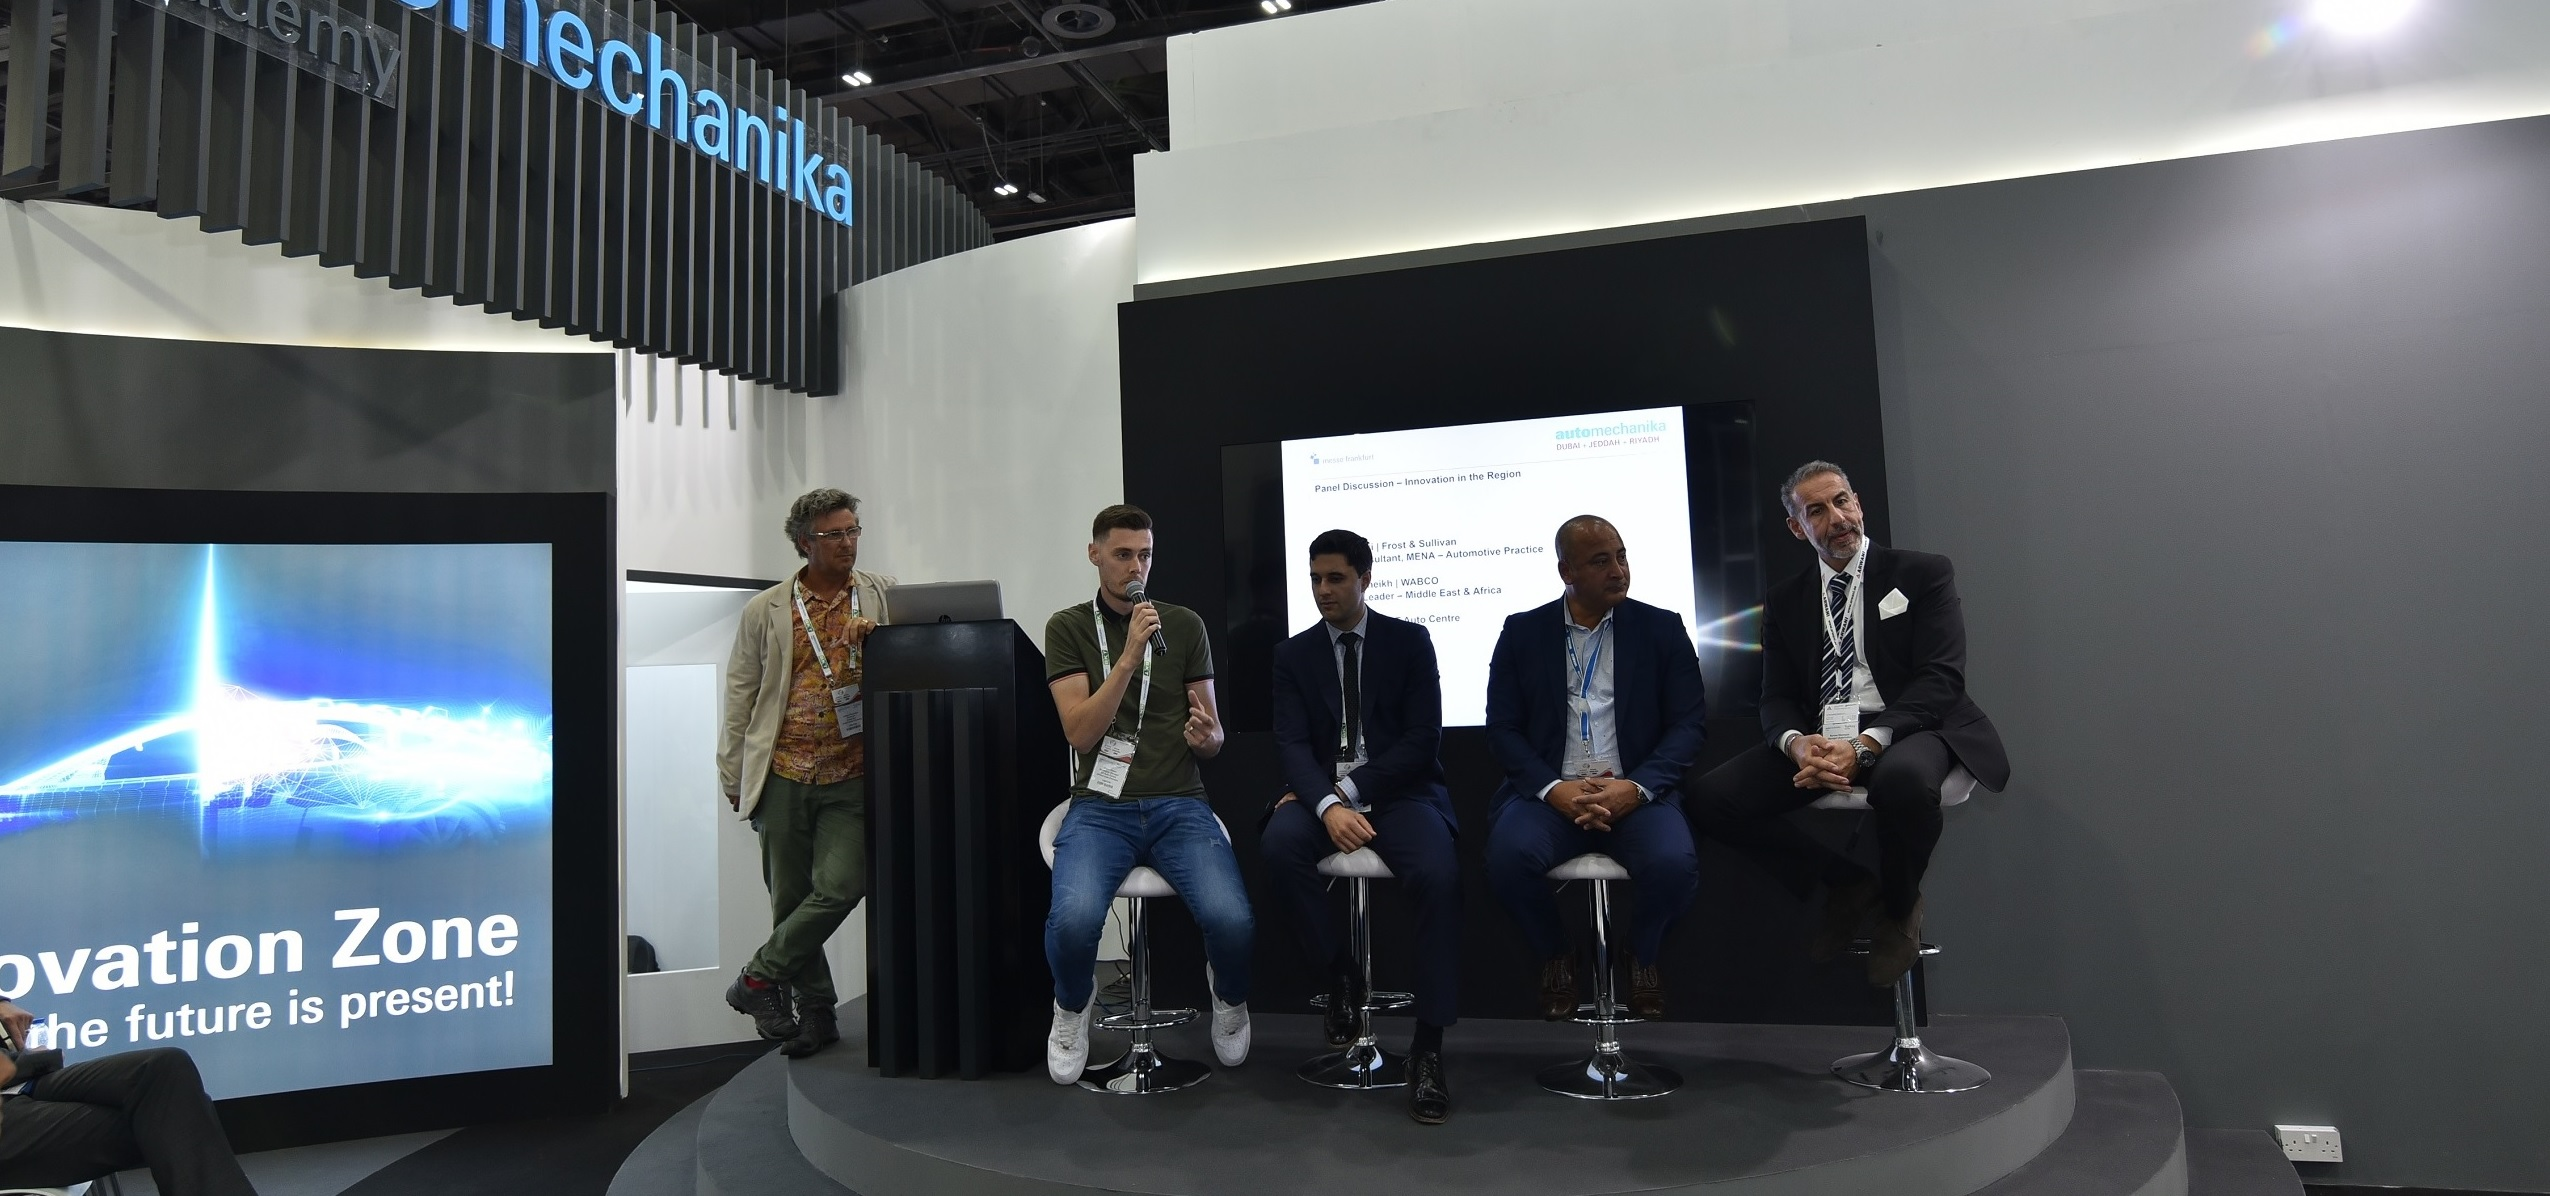 Automechanika Academy - Panel Discussion